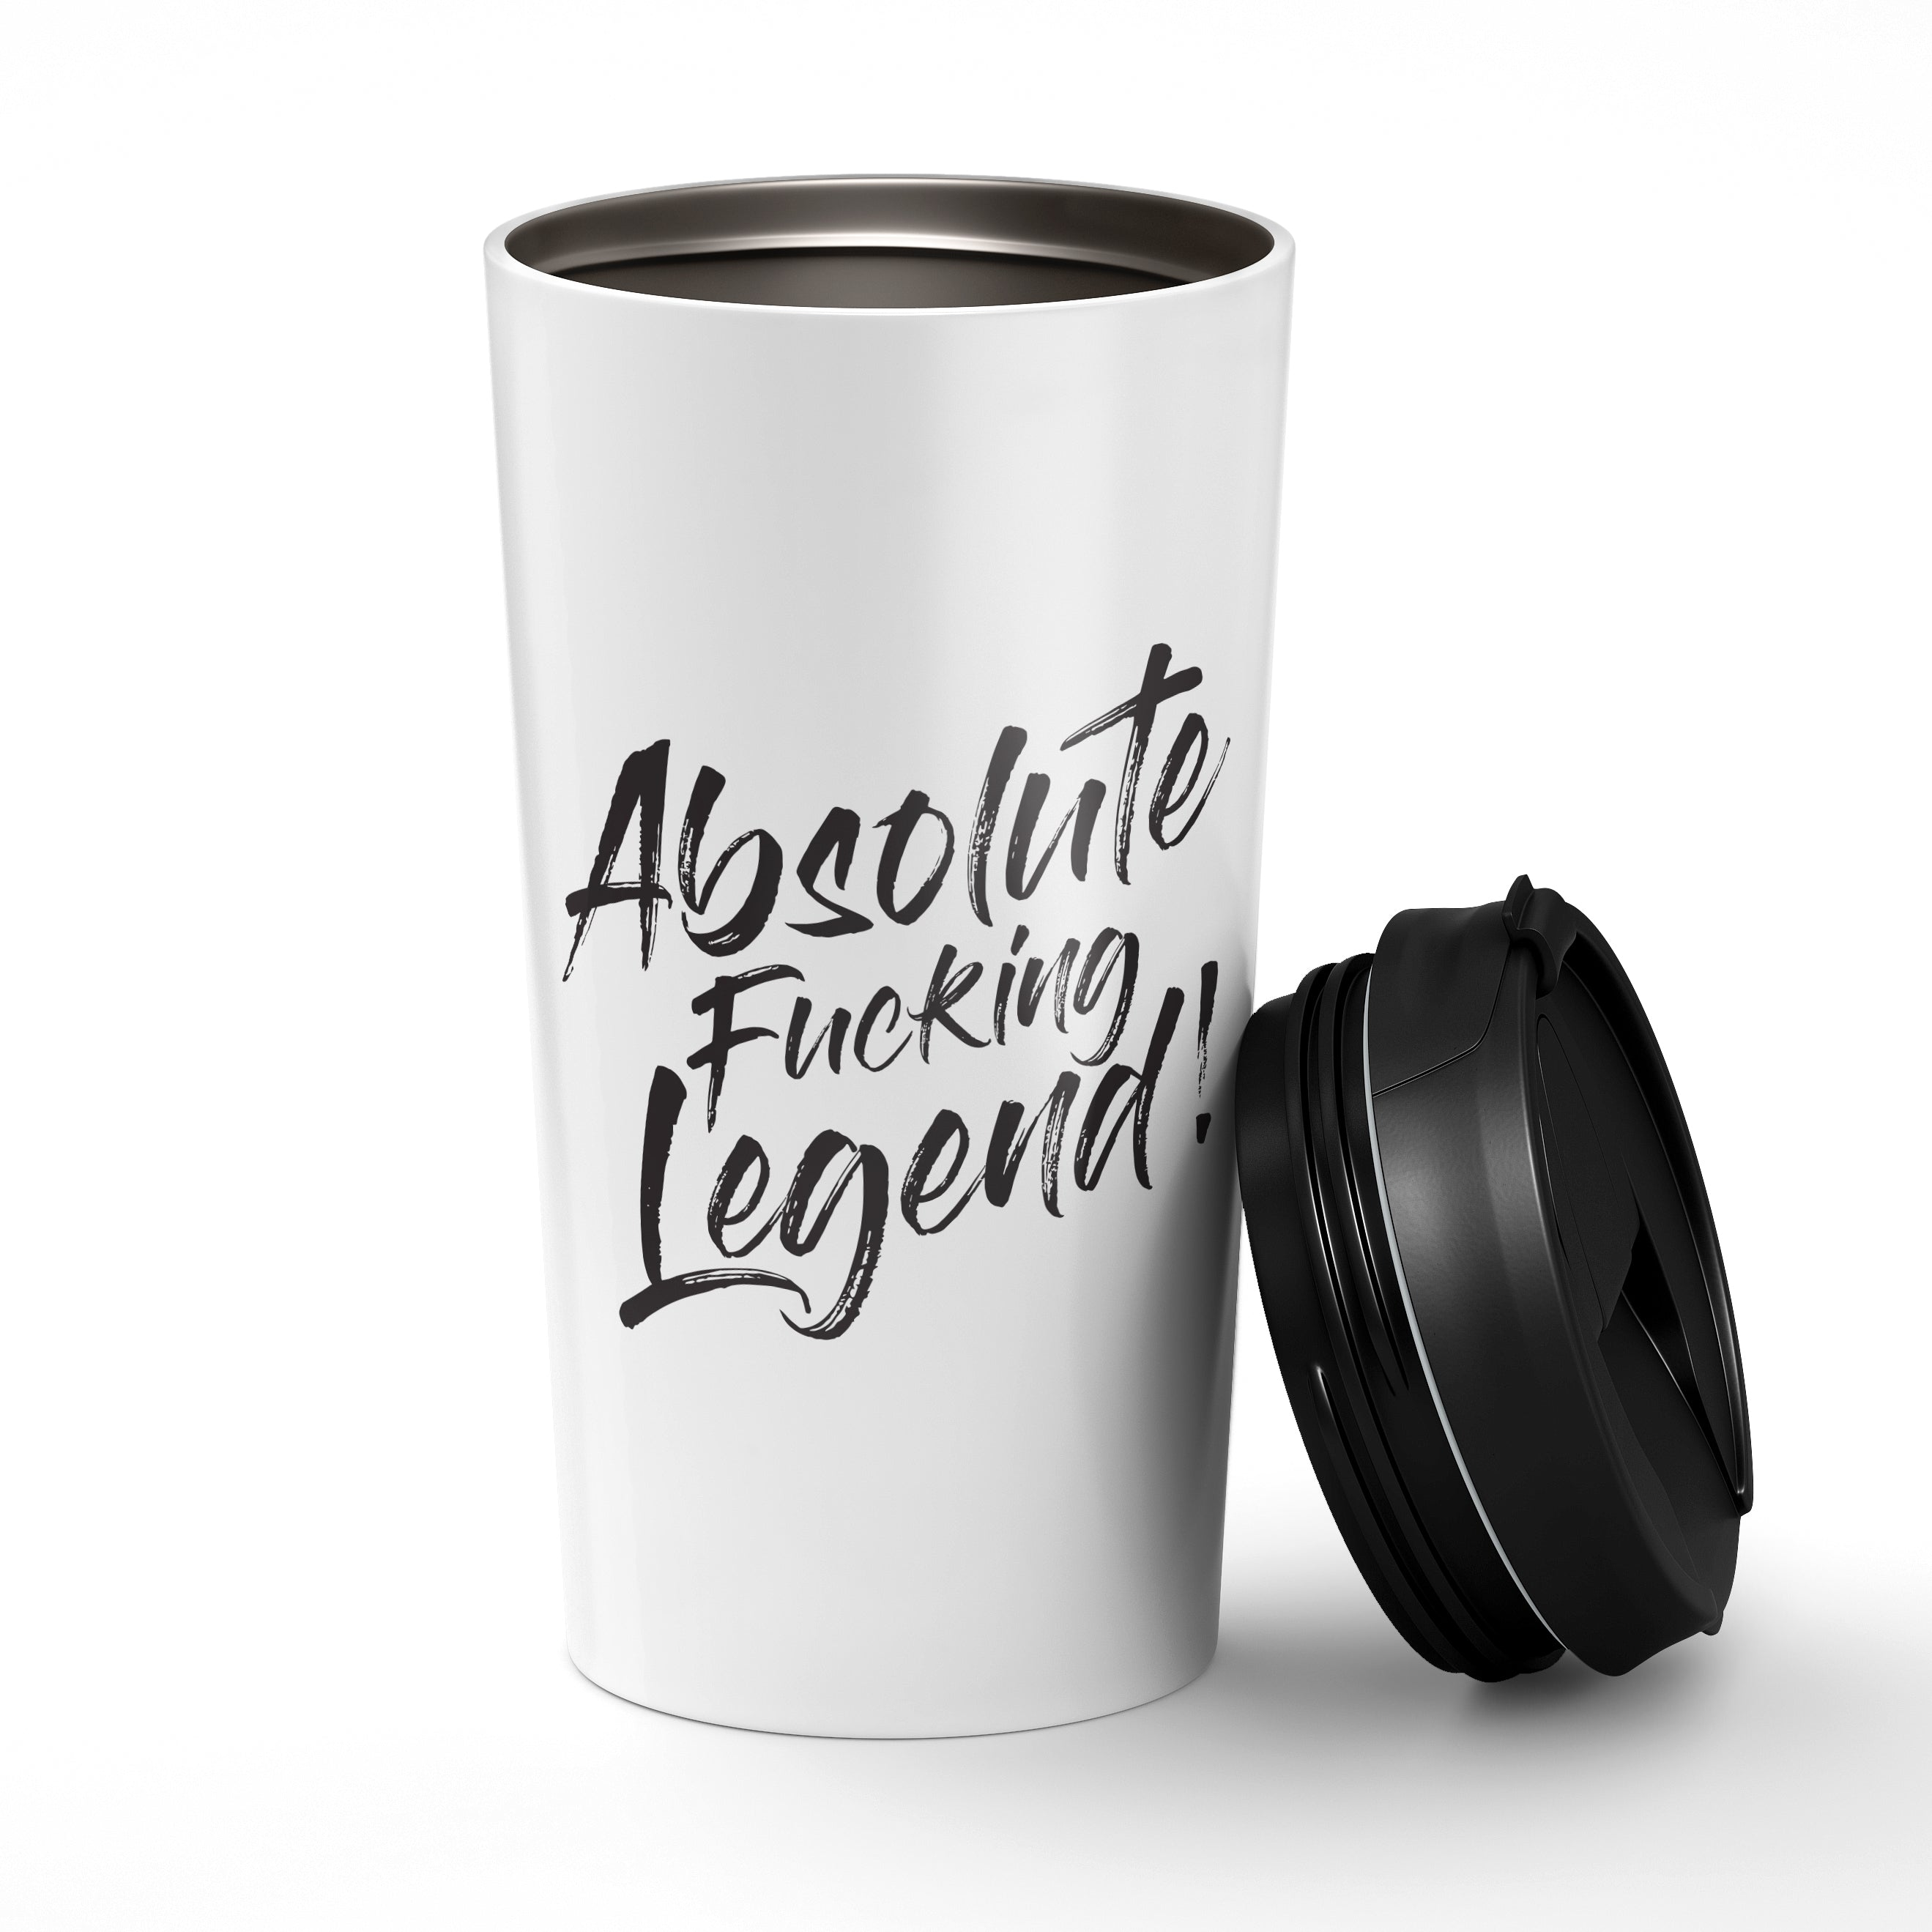 Absolute Fucking Legend. Stainless Steel Tumbler